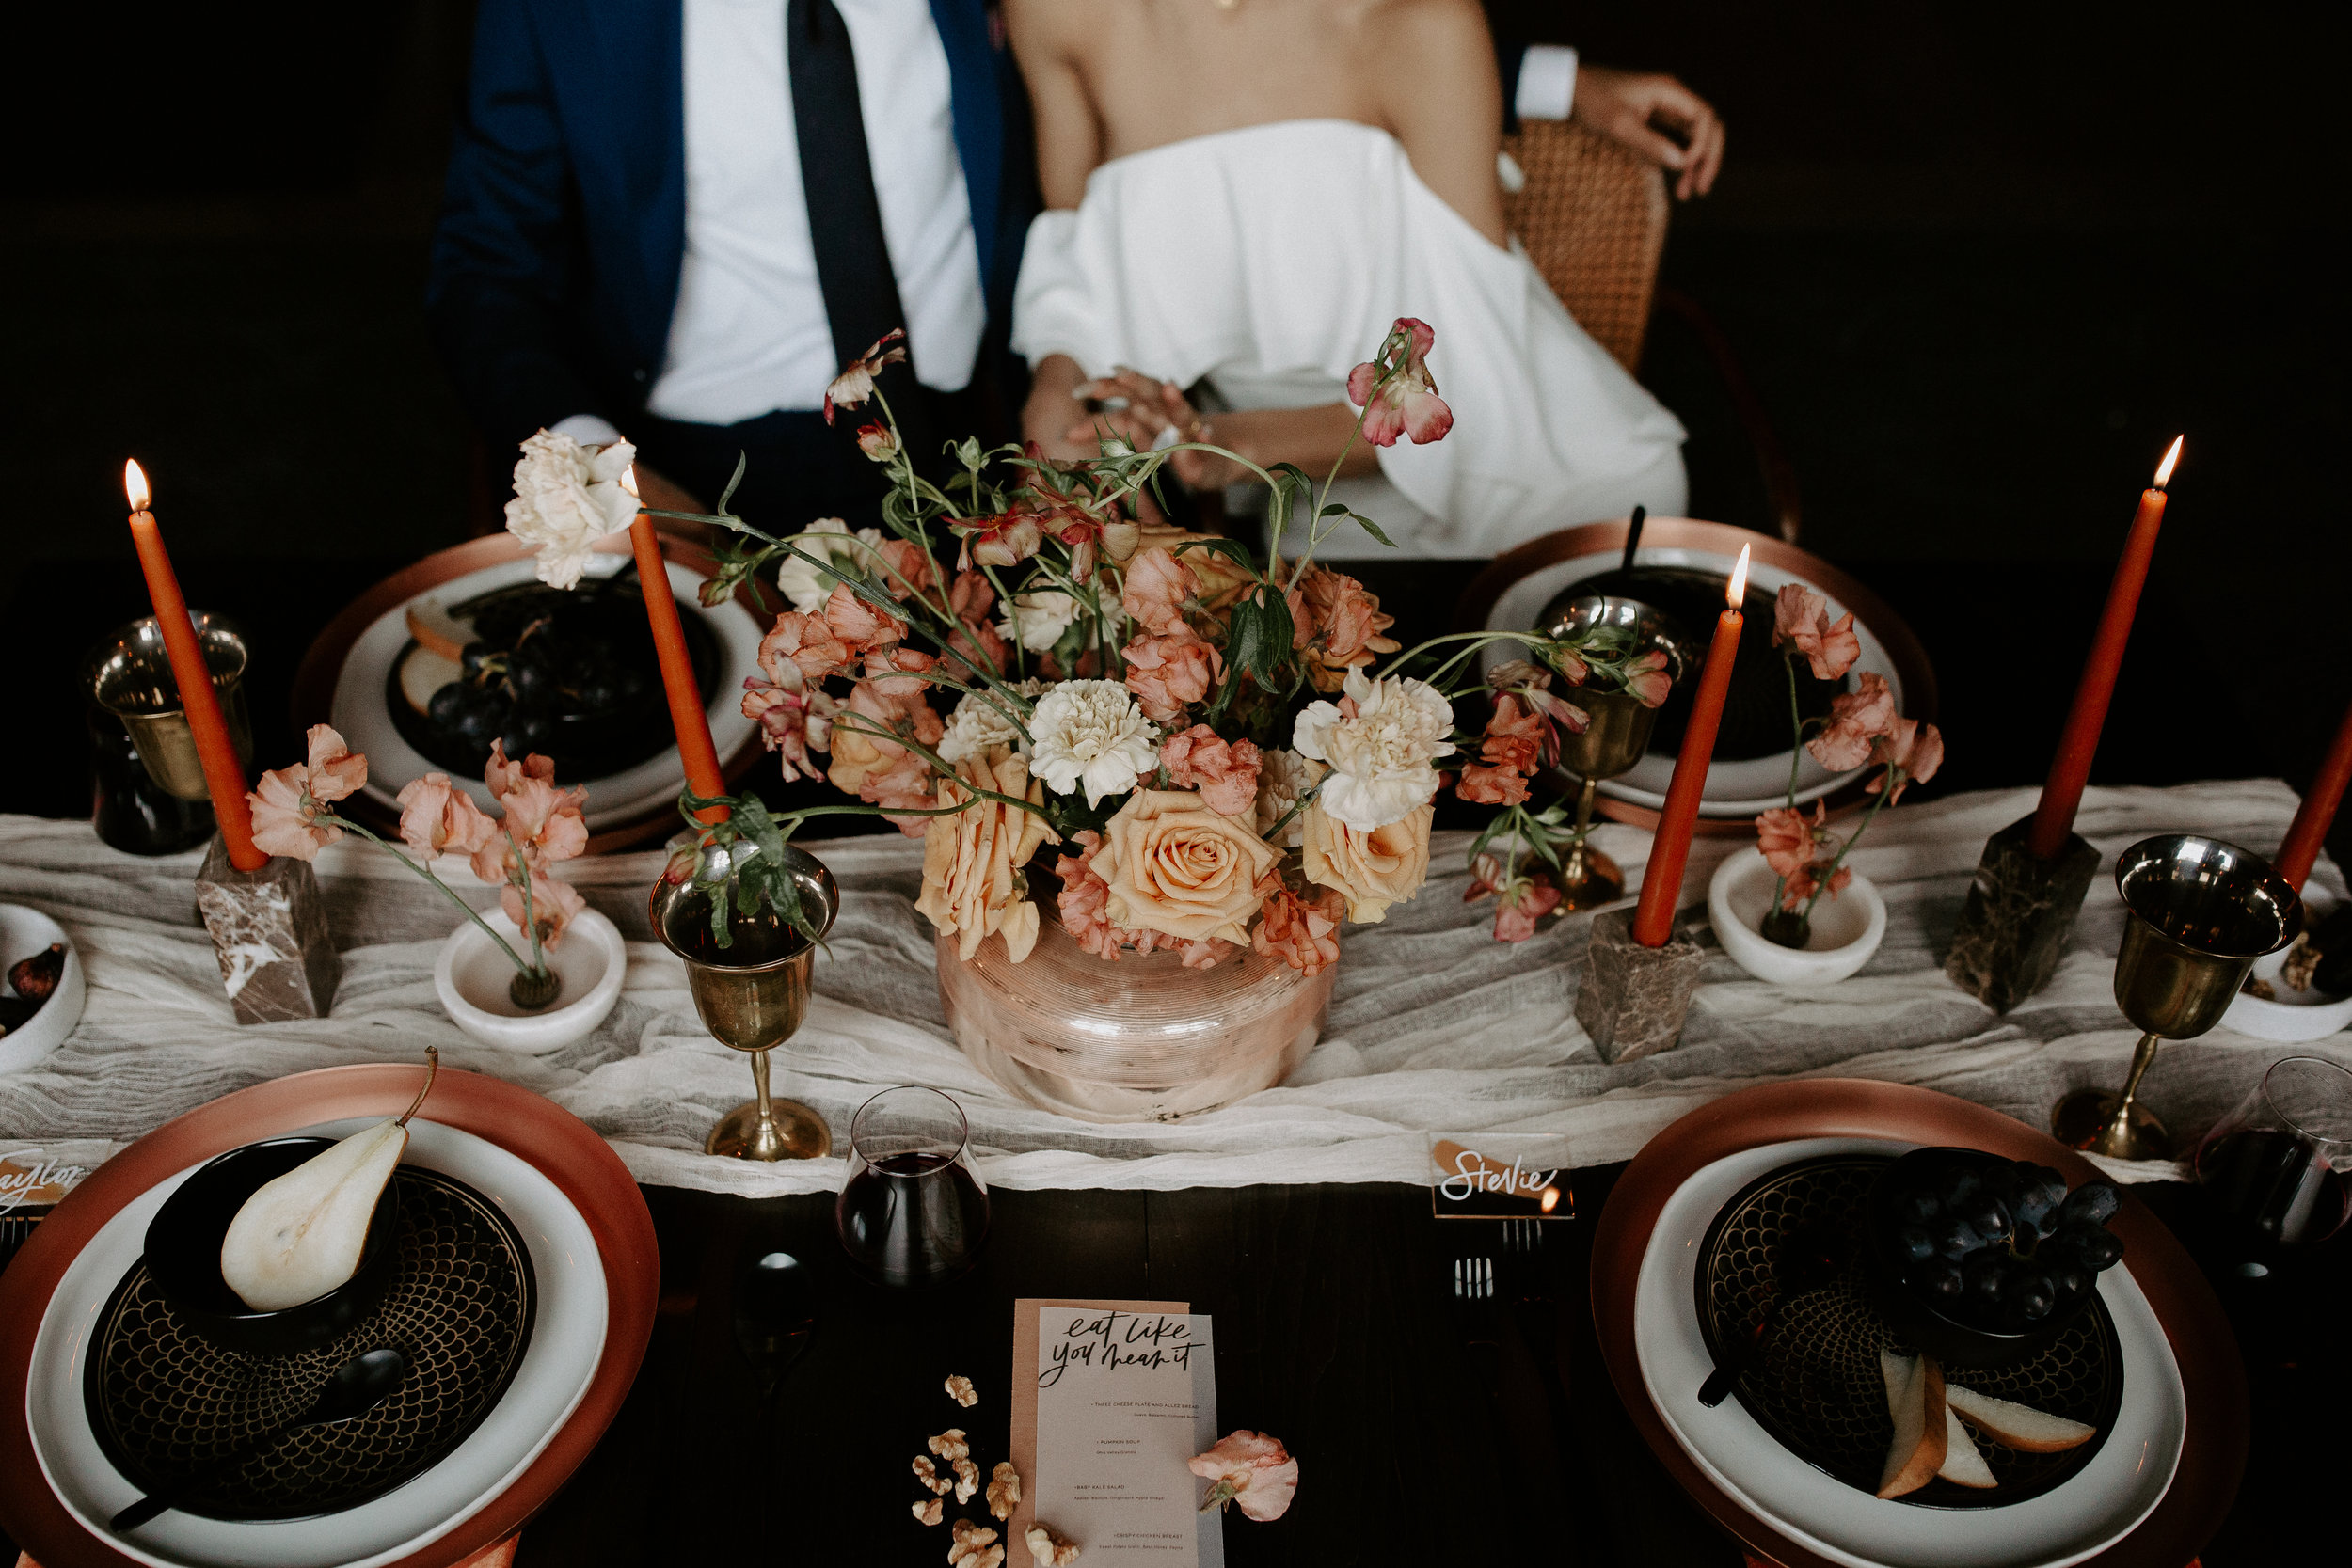 wedding table. elopement table. intimate table. wedding color pallet. moody wedding. moody elopement. adventurous flowers. boho bride. adventure bride. elopement planner.